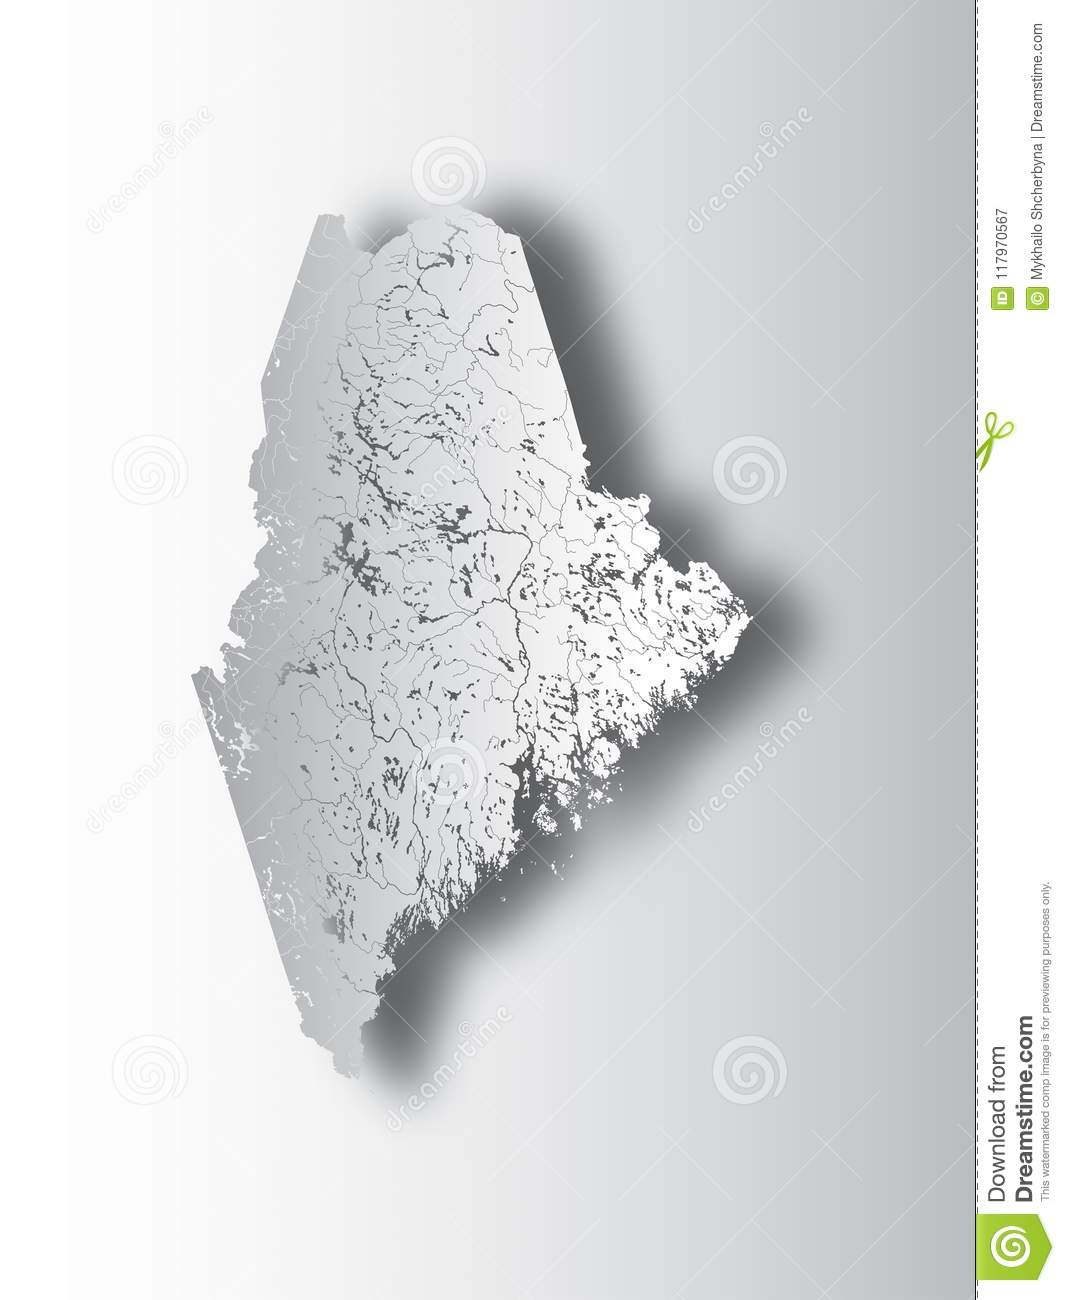 Map Of Maine Lakes.Map Of Maine With Lakes And Rivers Stock Vector Illustration Of